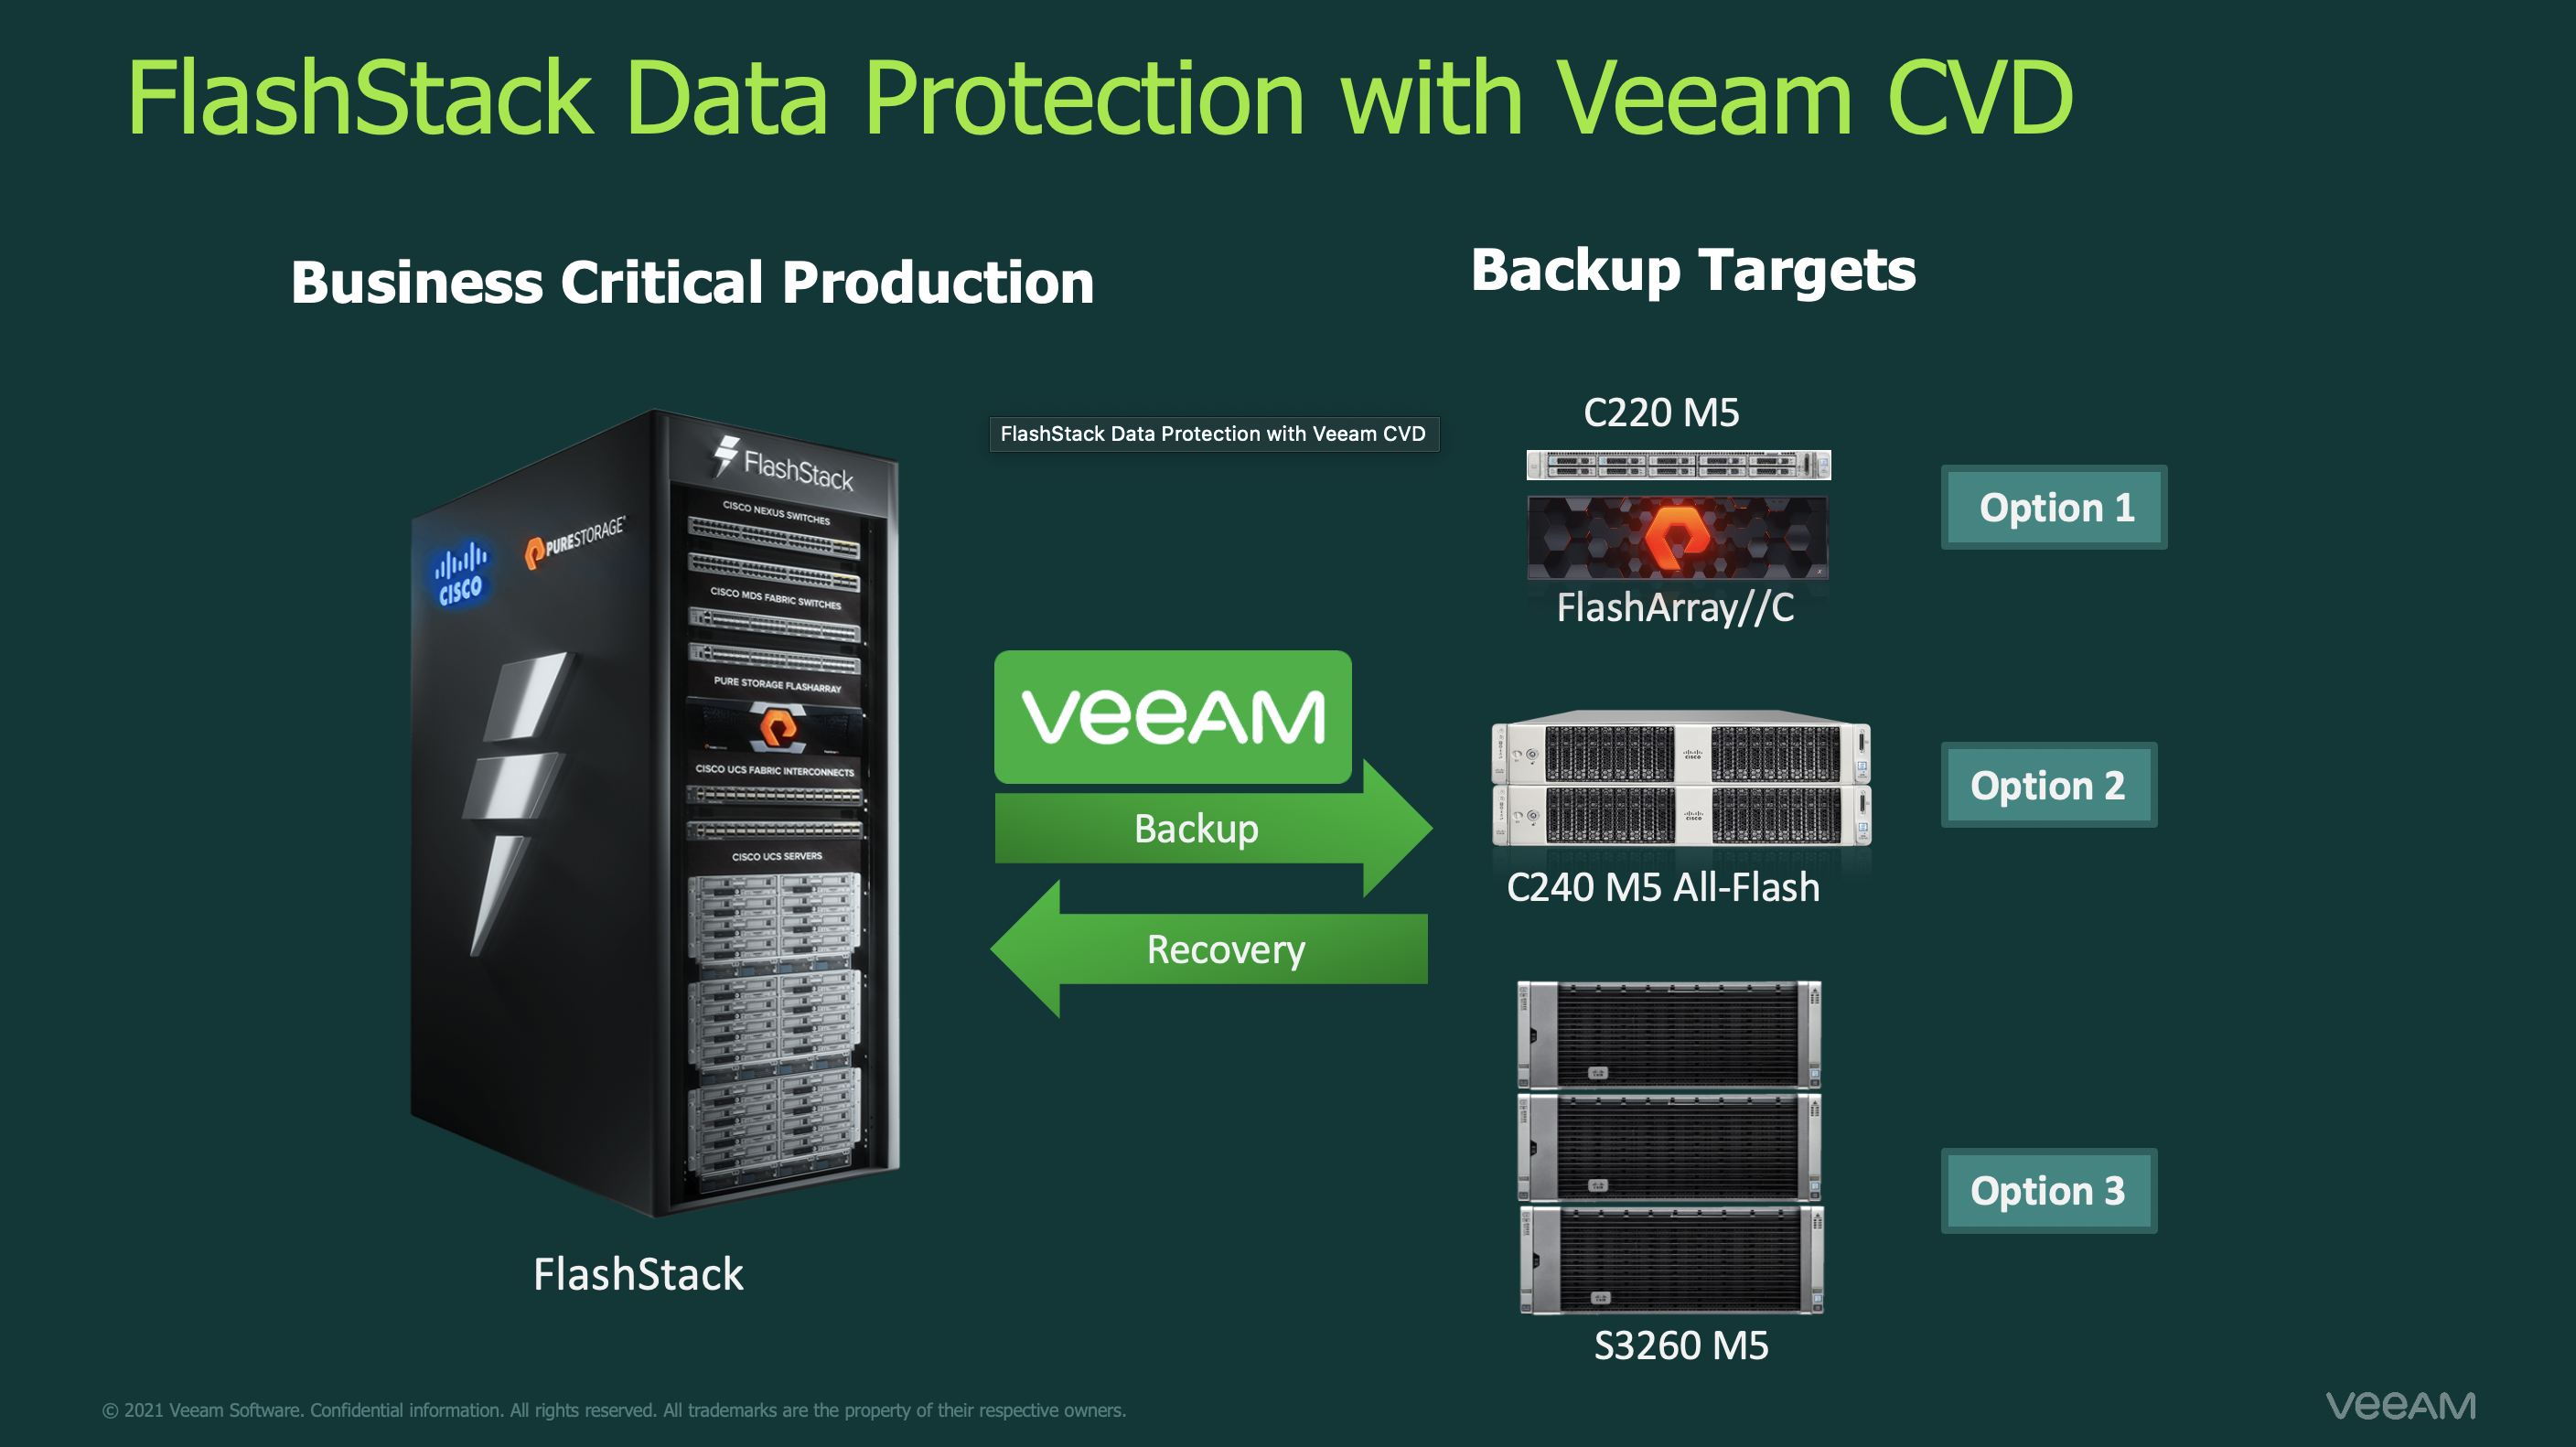 Cisco Validated Style (CVD) for FlashStack Information Protection with Veeam